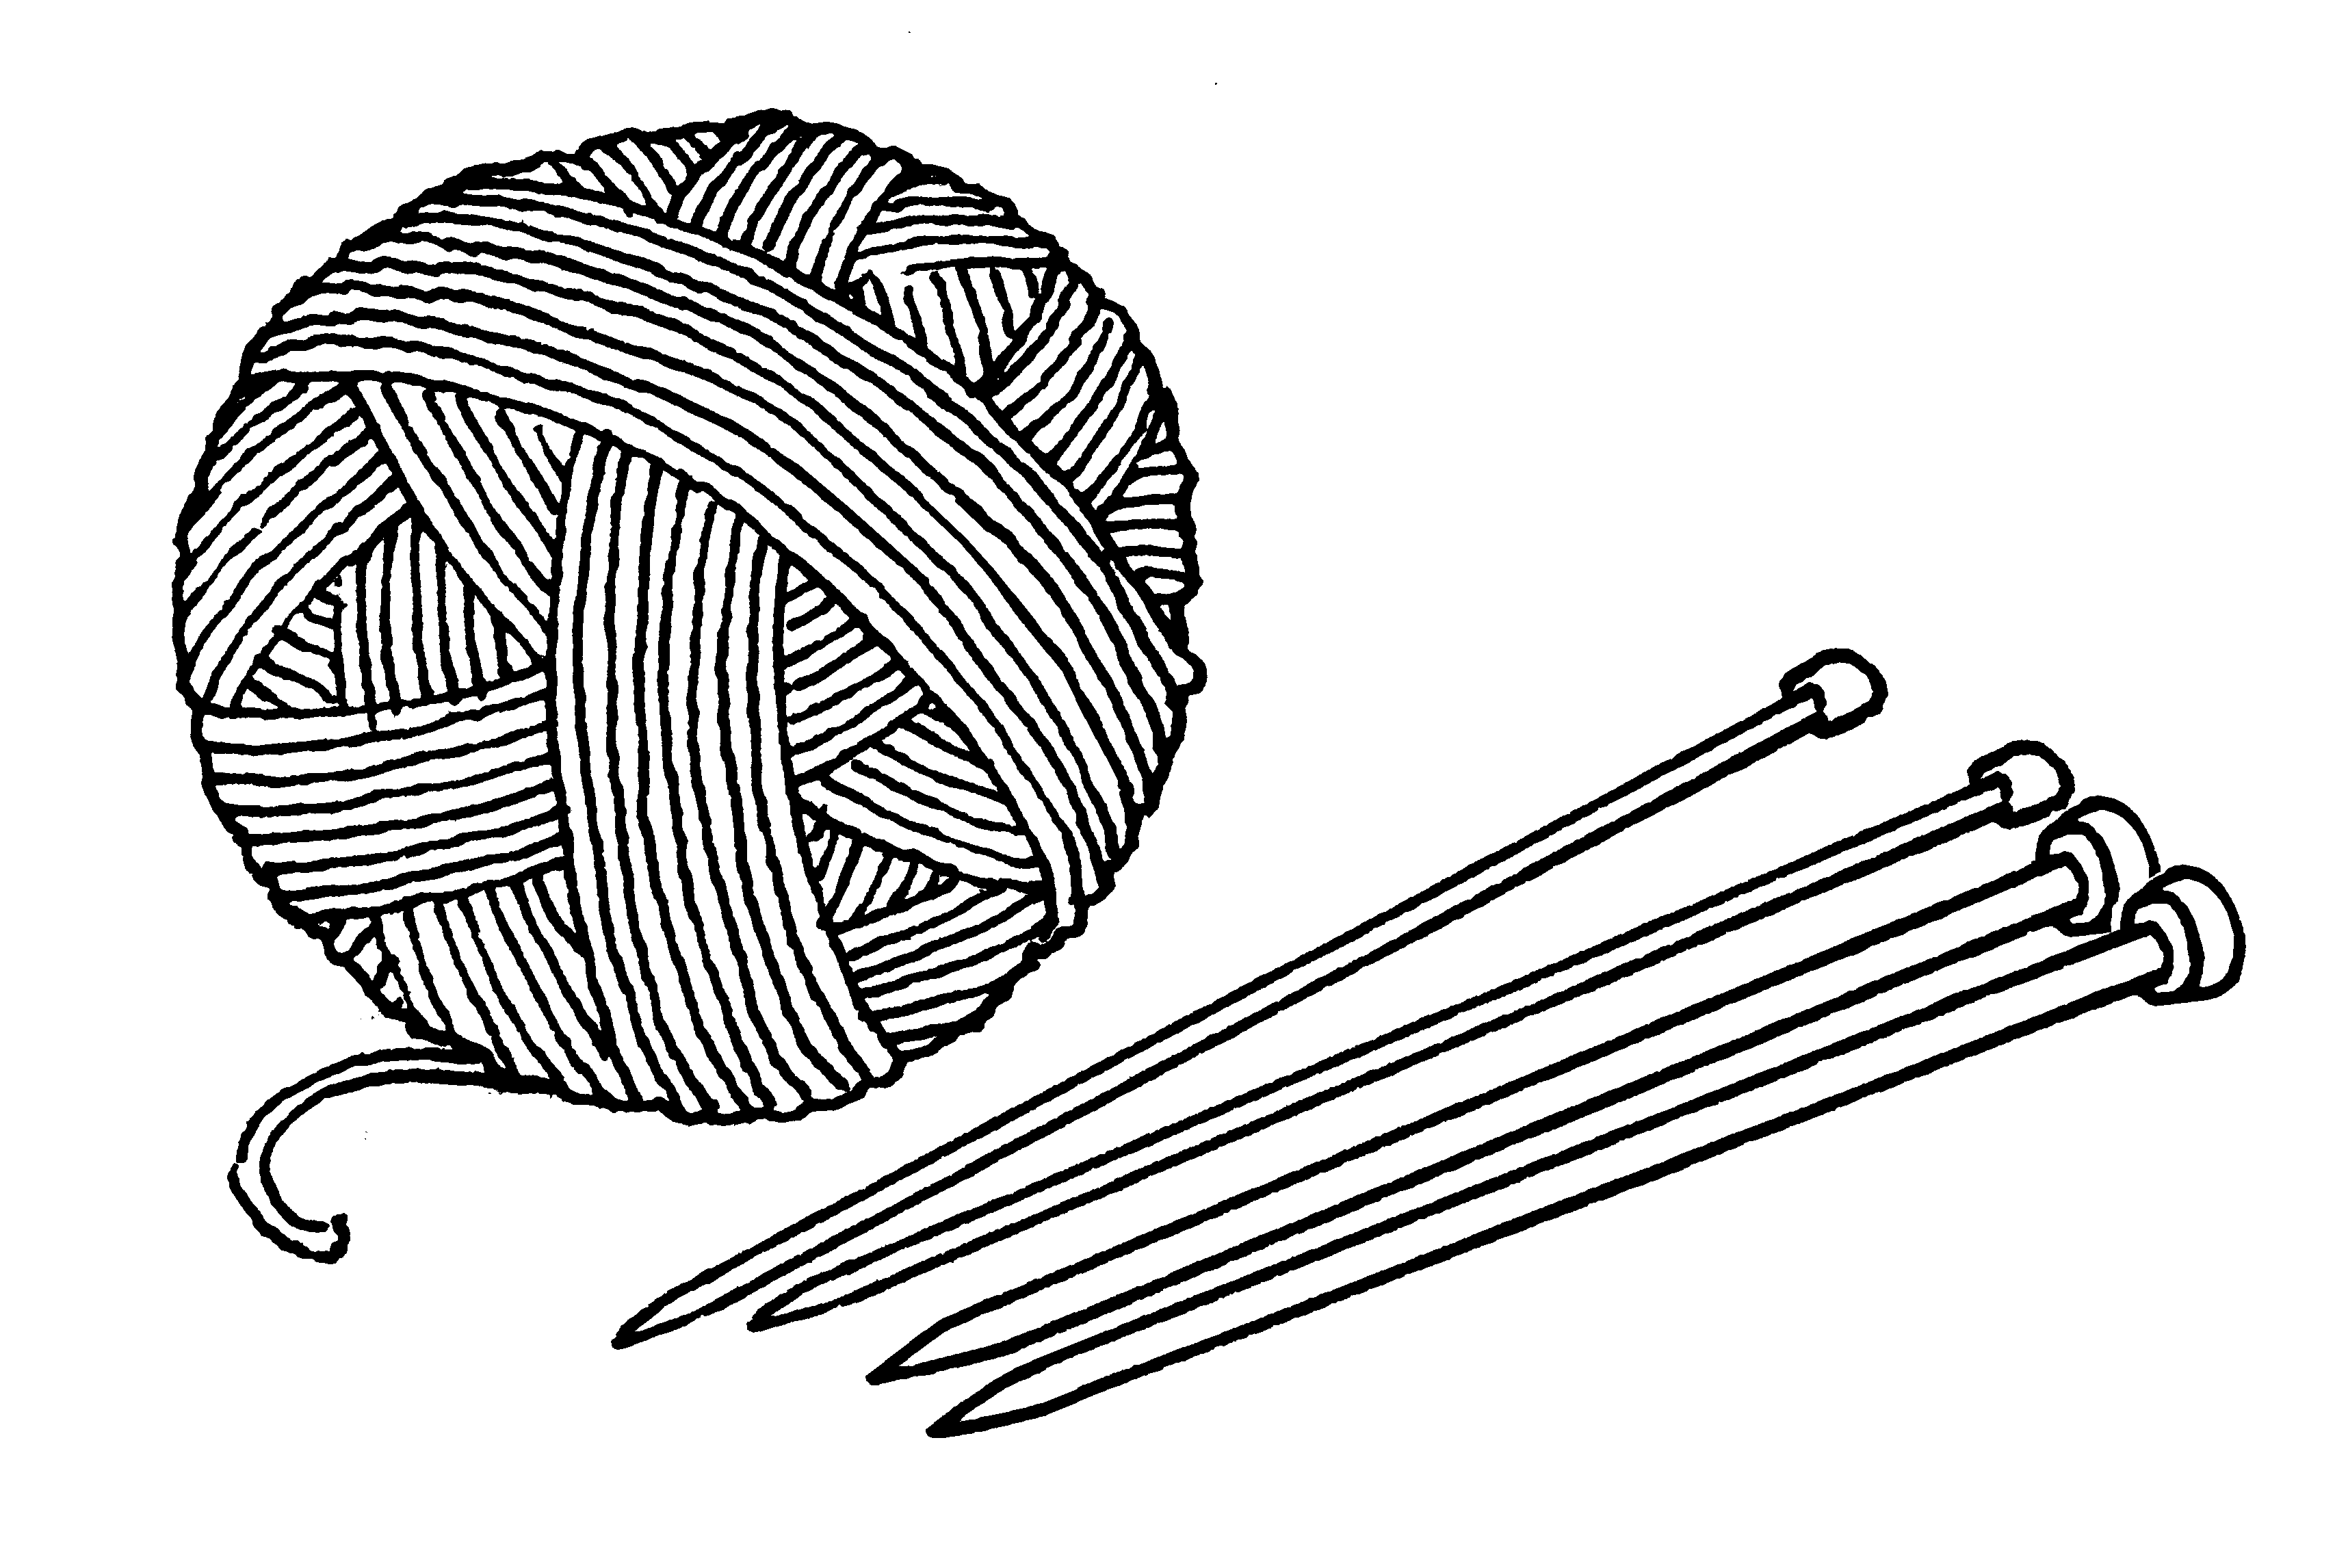 Line Drawing Yarn : Png yarn and knitting needles transparent